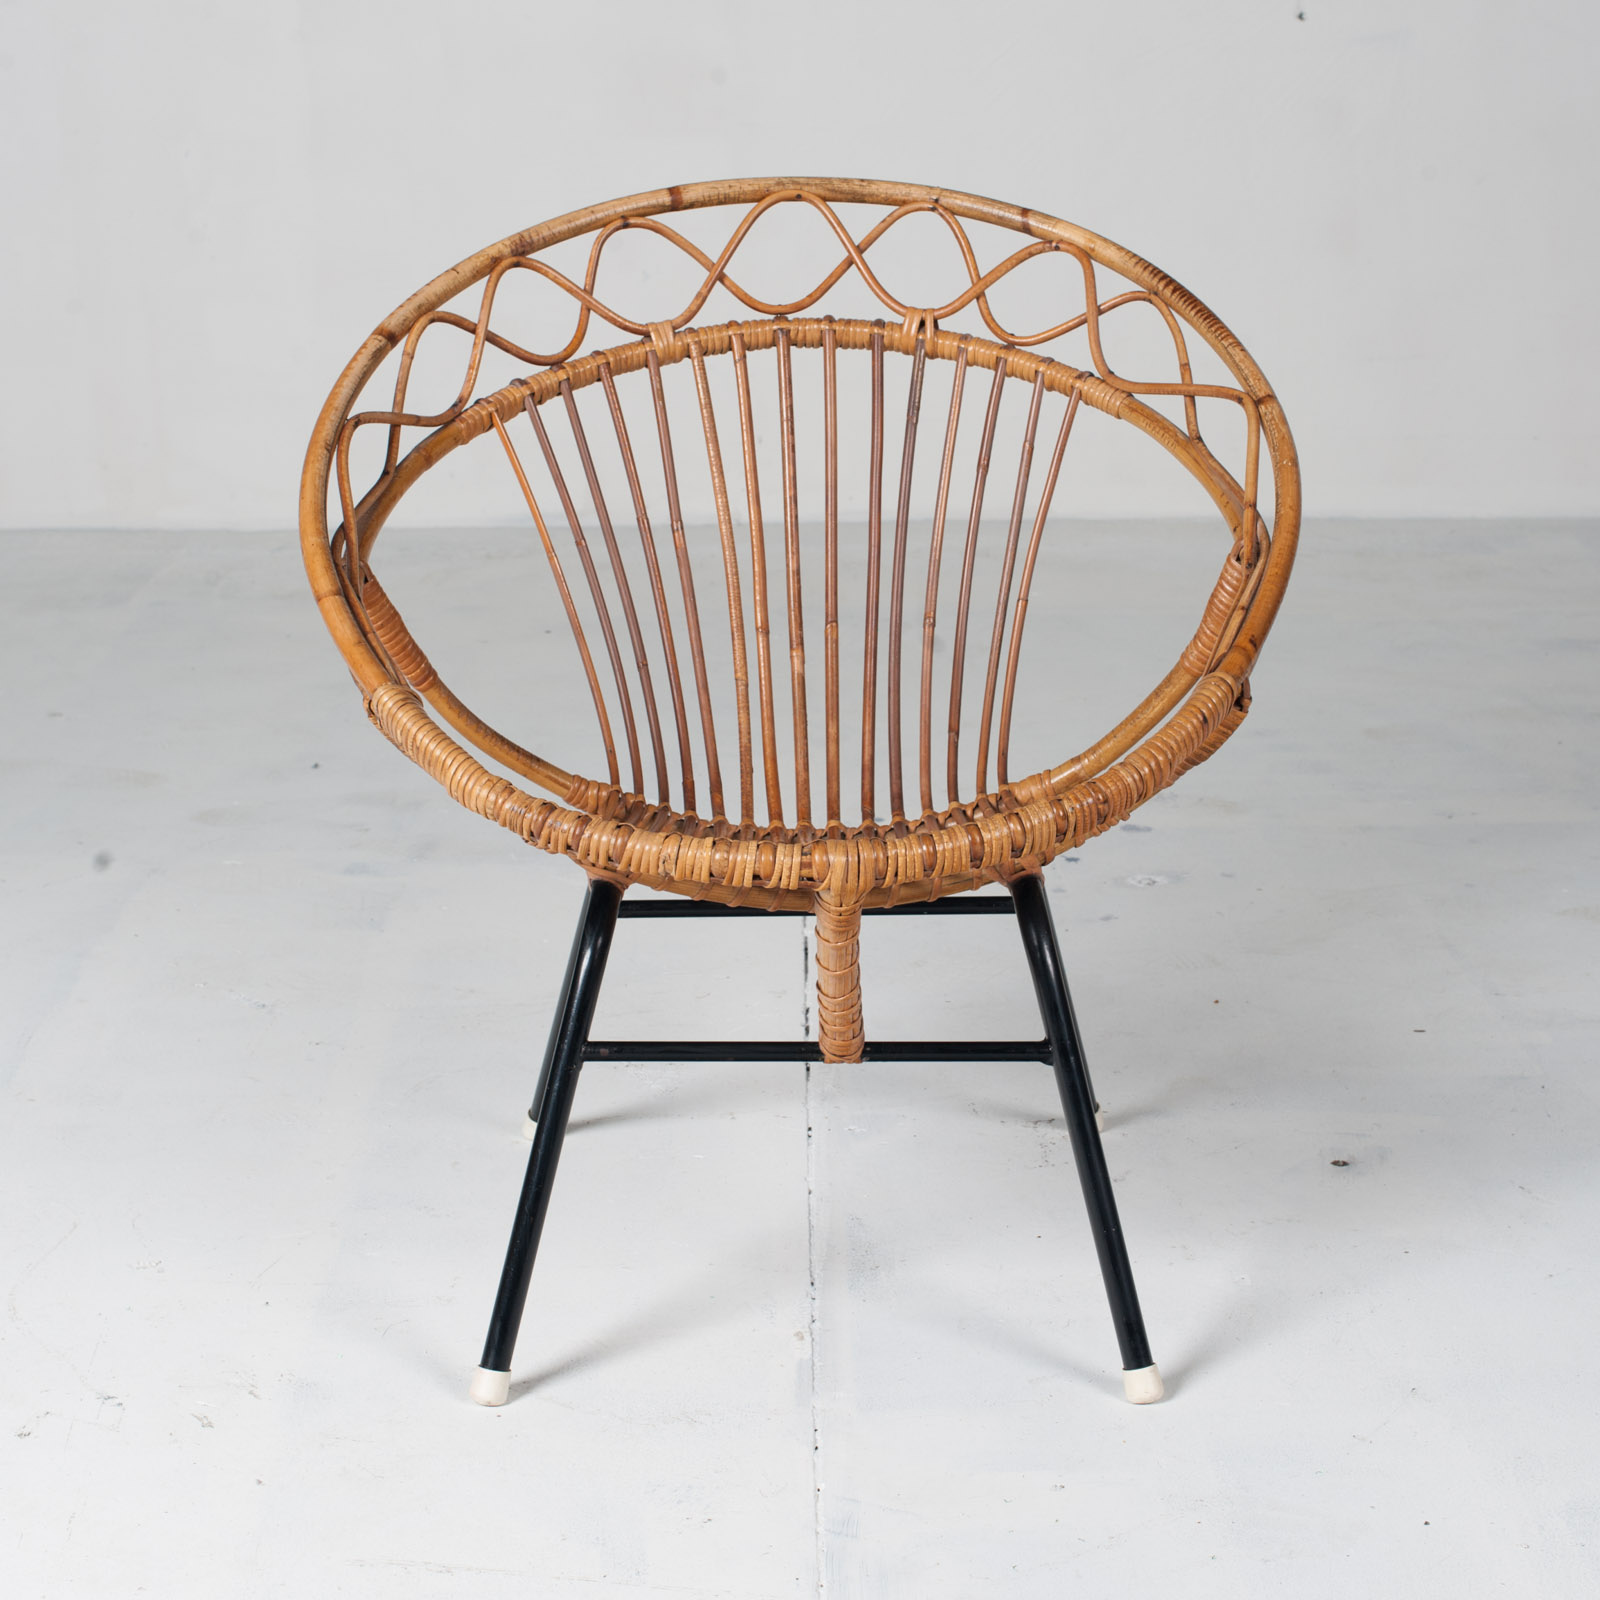 Rattan Lounge Chair By Rohe Noordwolde 1960s Netherlands 02